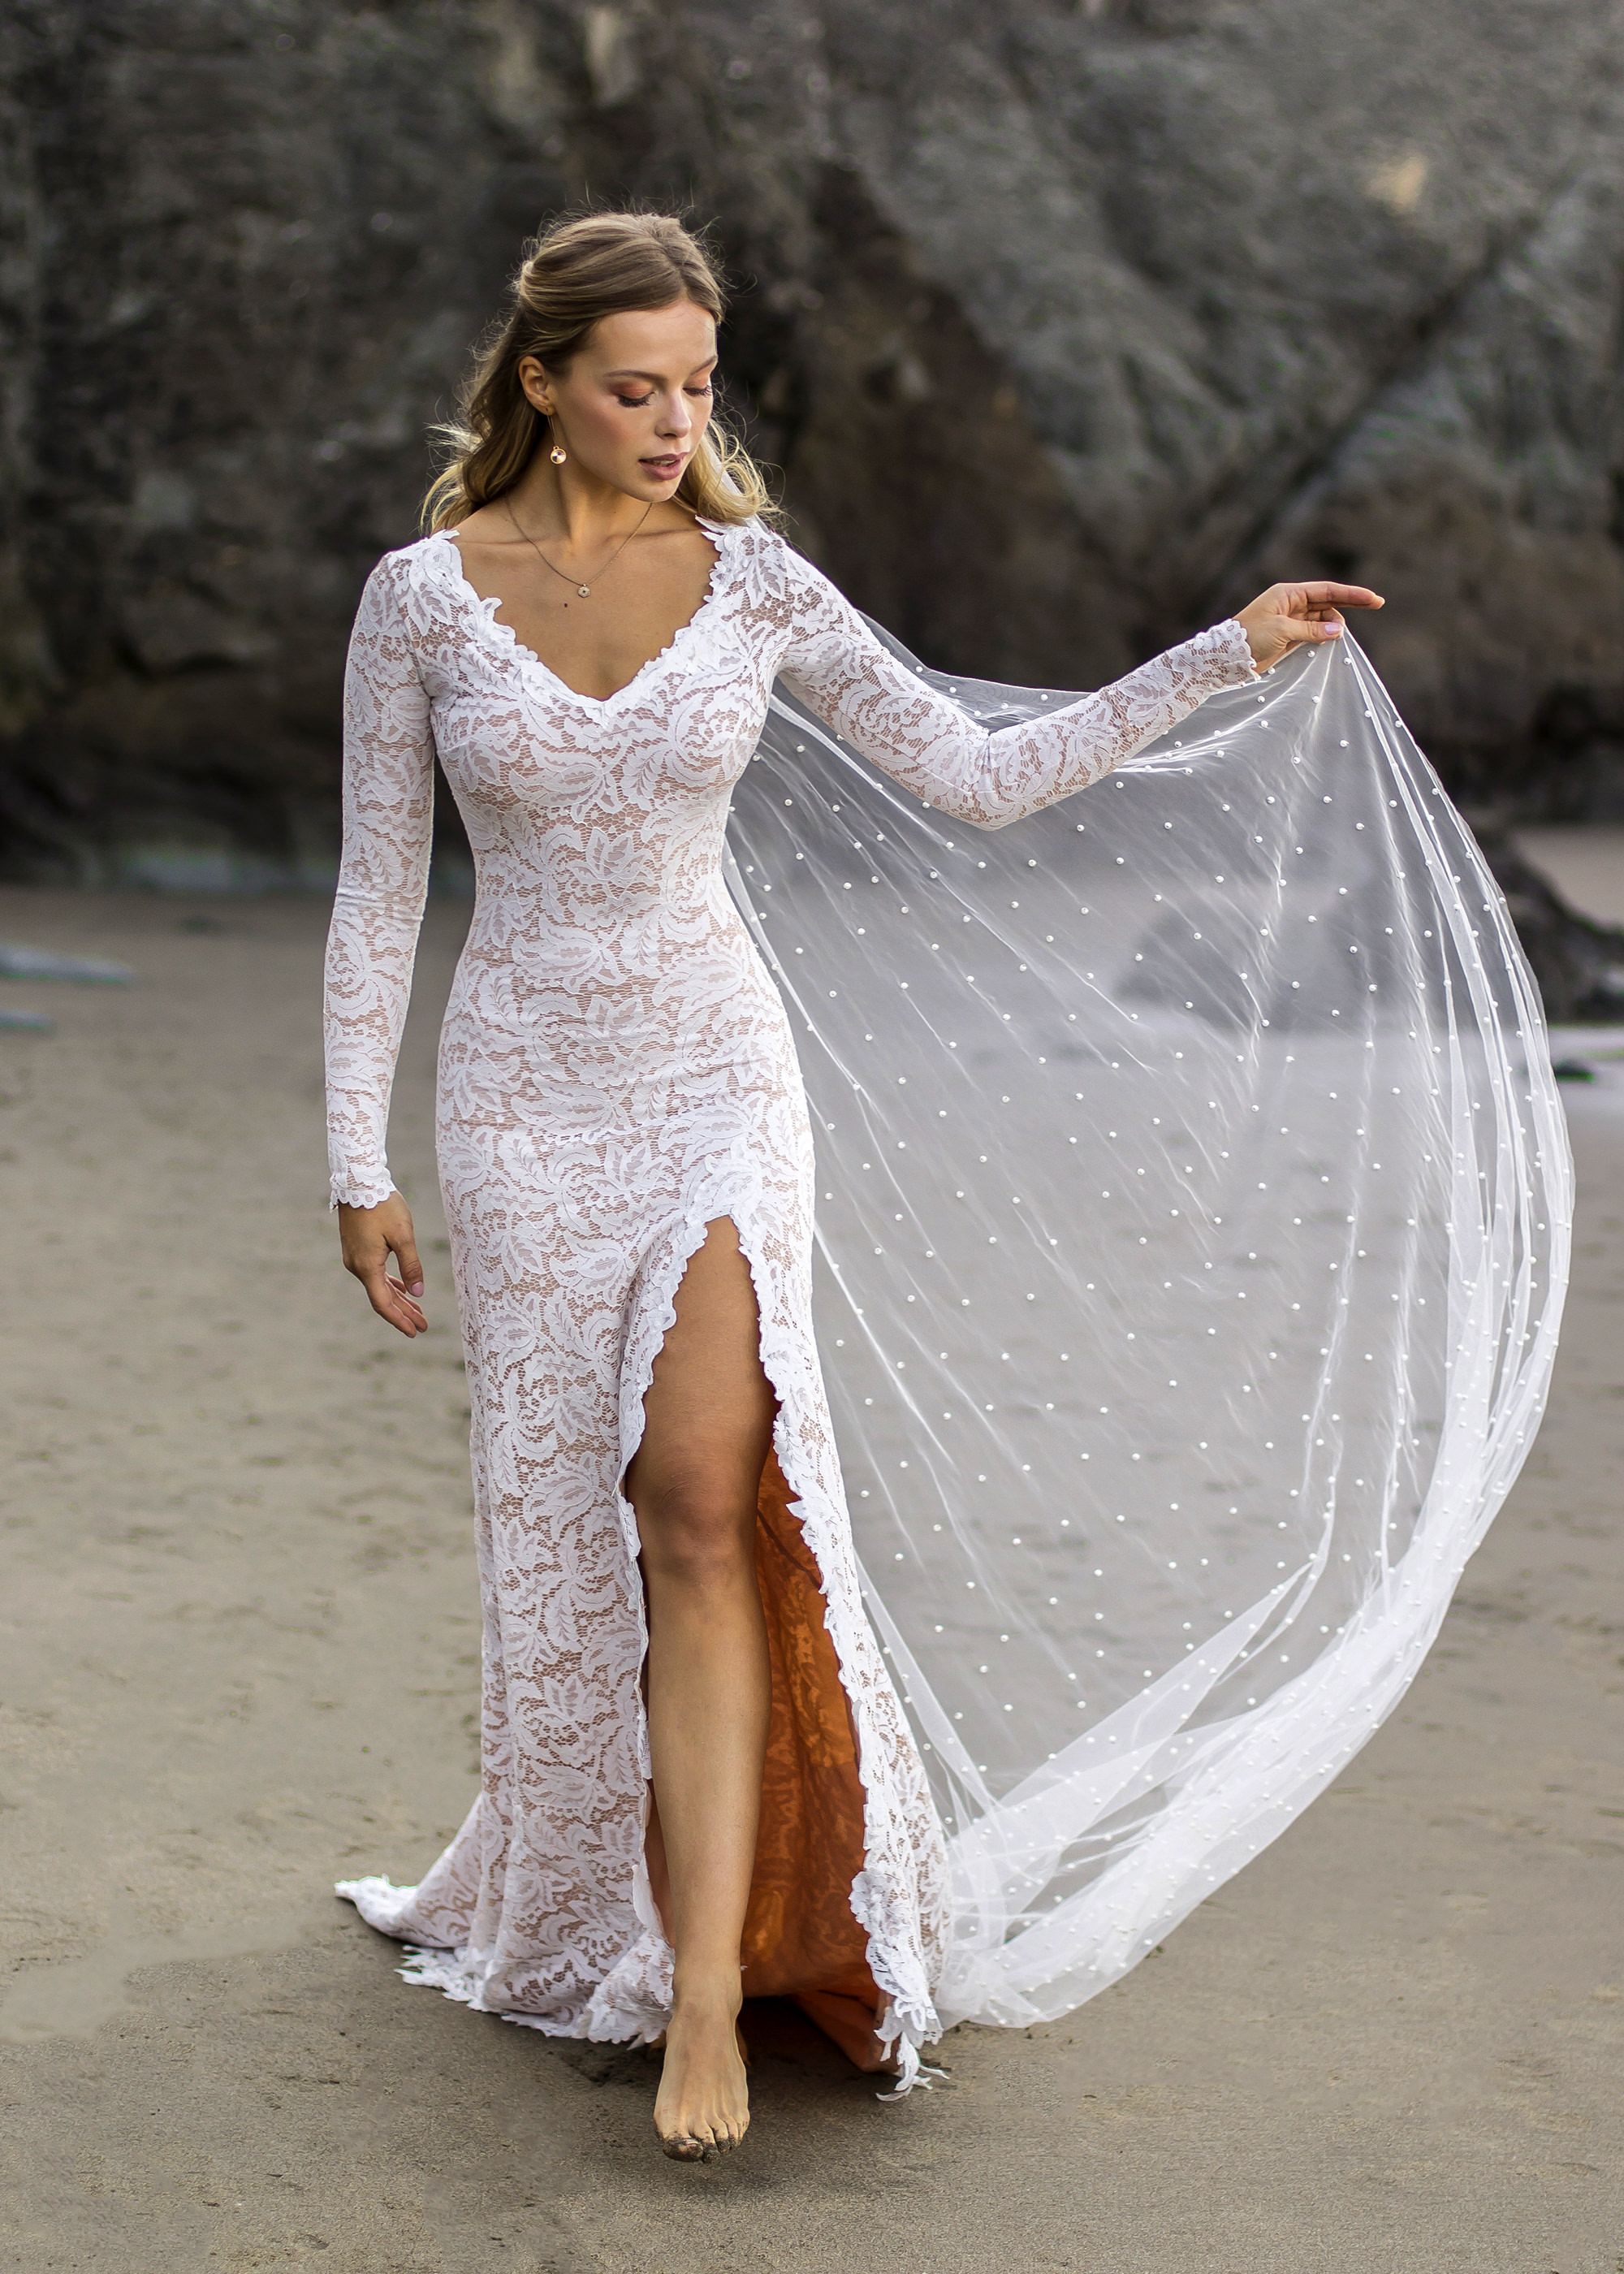 stretch lace wedding dress with high slit and open back